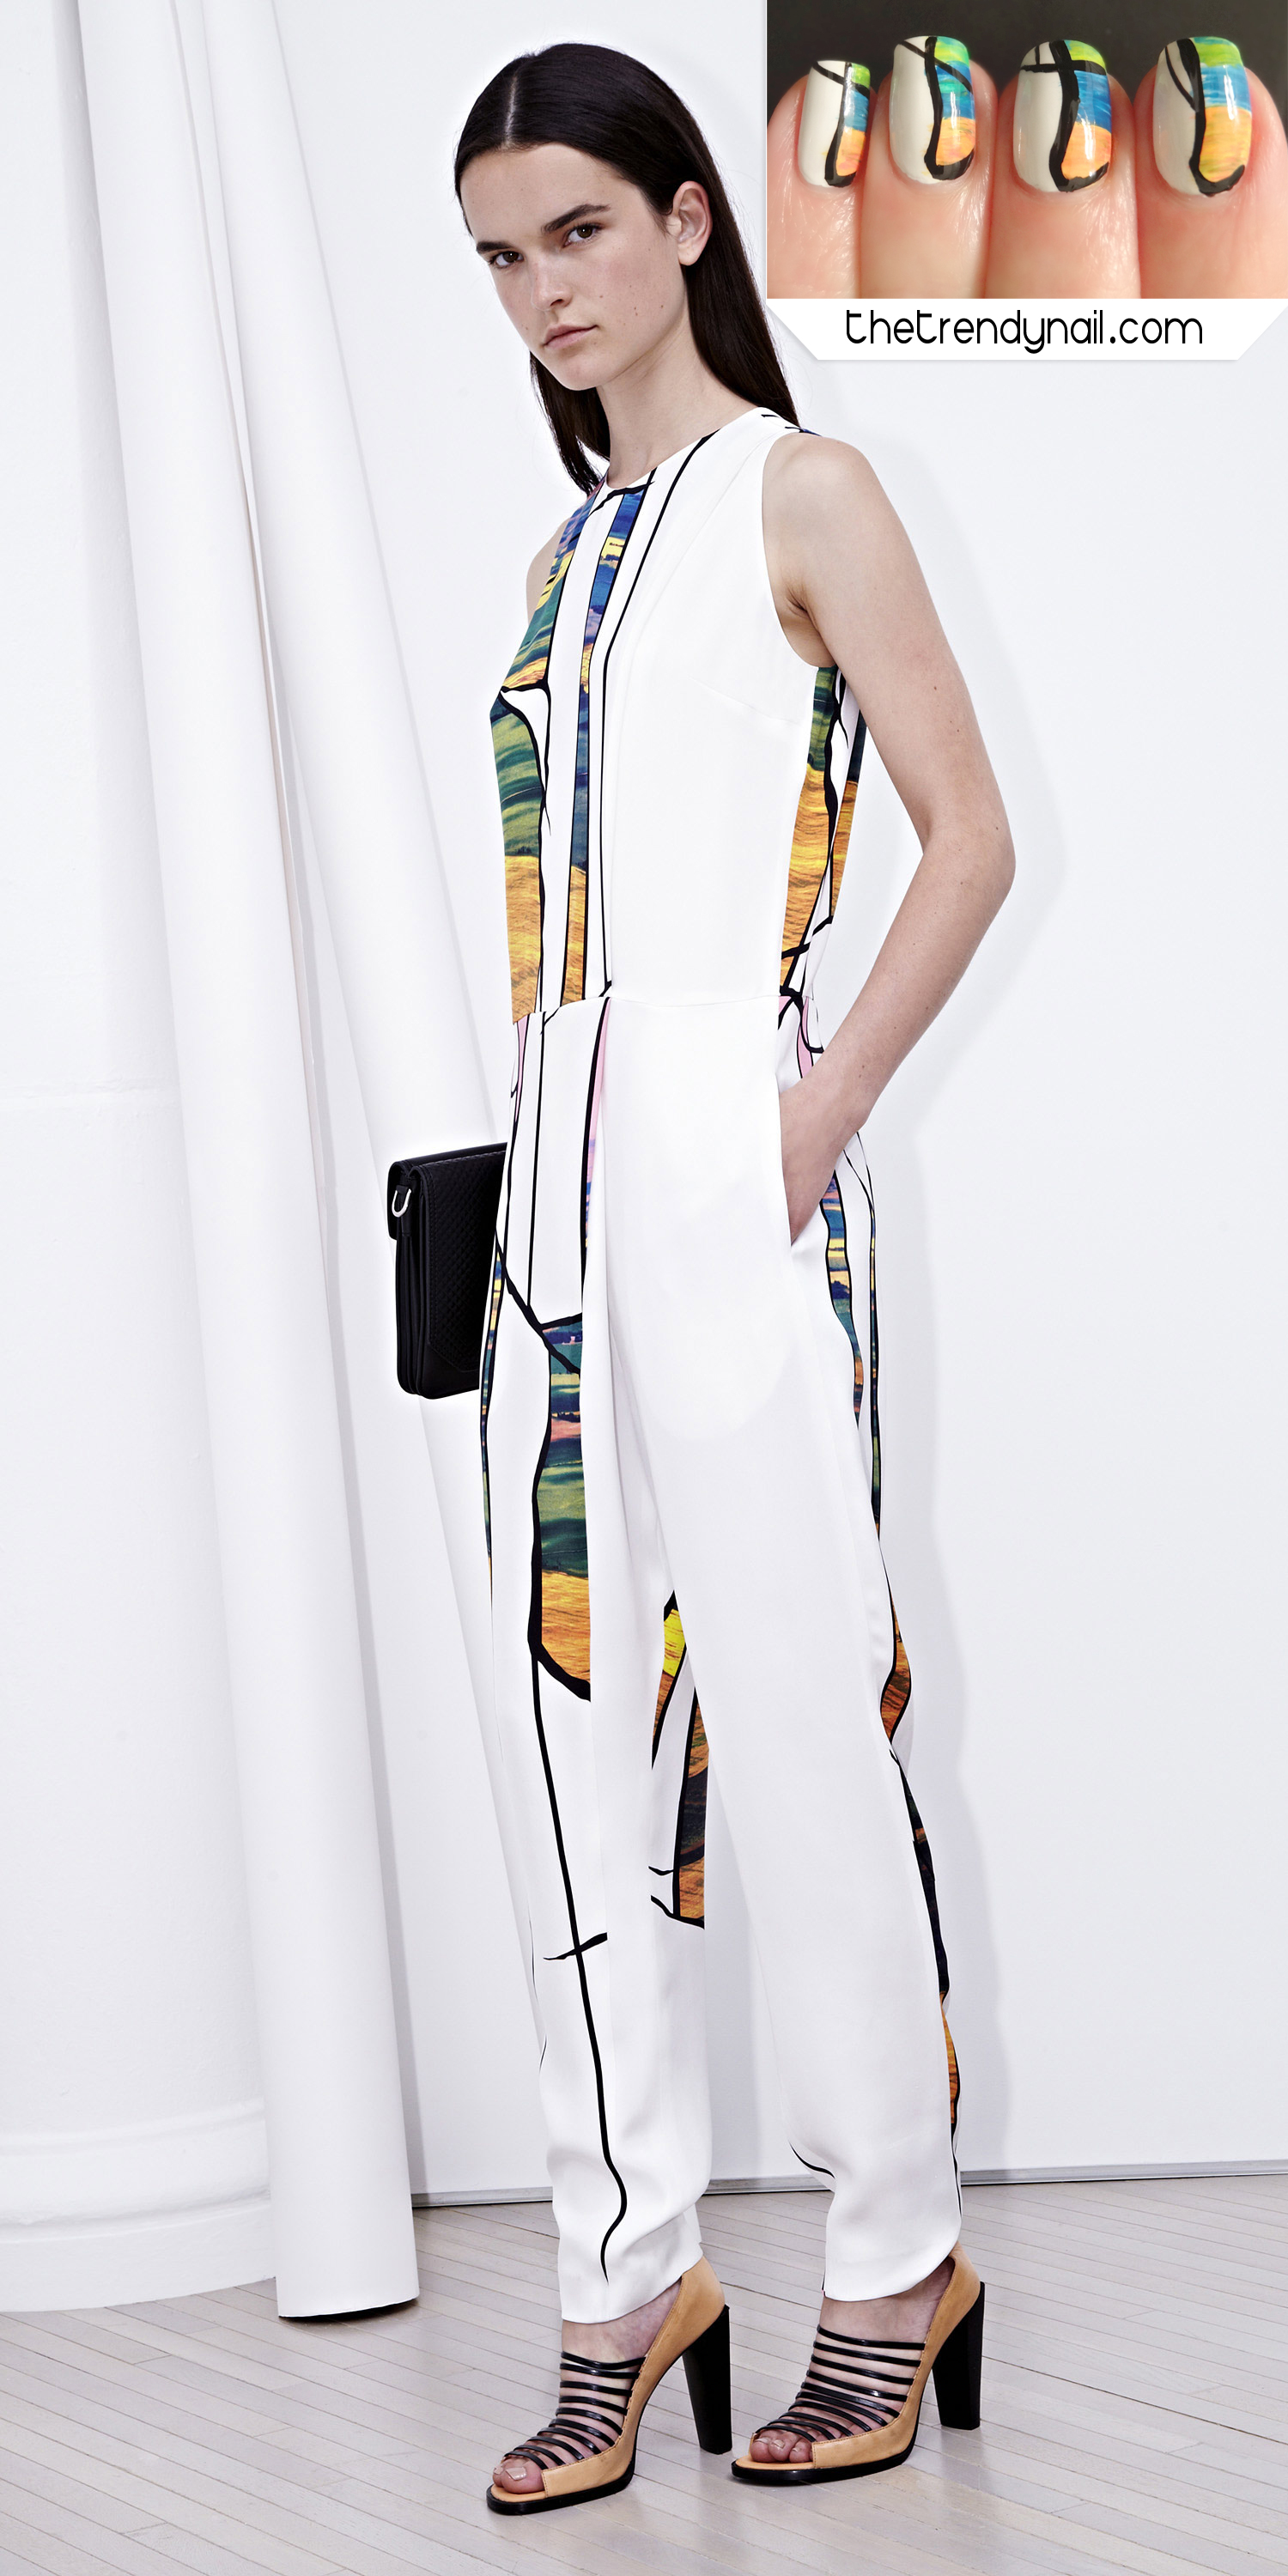 Picture of Mani Muse: 3.1 Phillip Lim Resort 2014 Nail Art